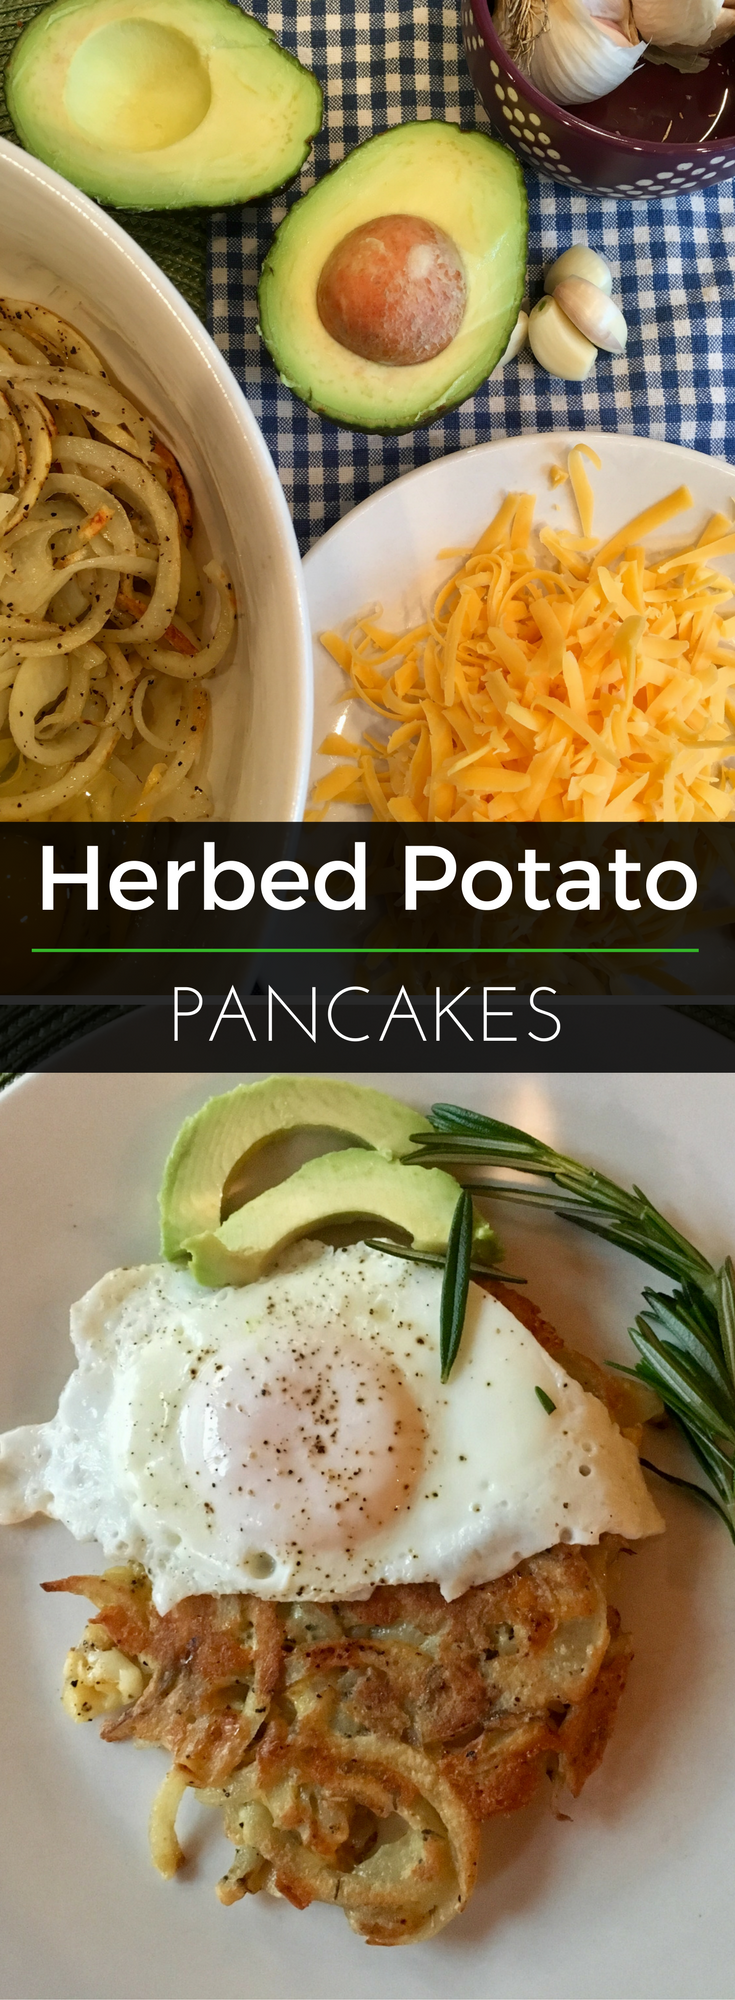 Pancakes don't always have to be sweet! Try these savory Herbed Potato Pancakes from our nutritionist. This recipe is perfect for any meal of the day. | Clearly Organic Nutritionist Corner